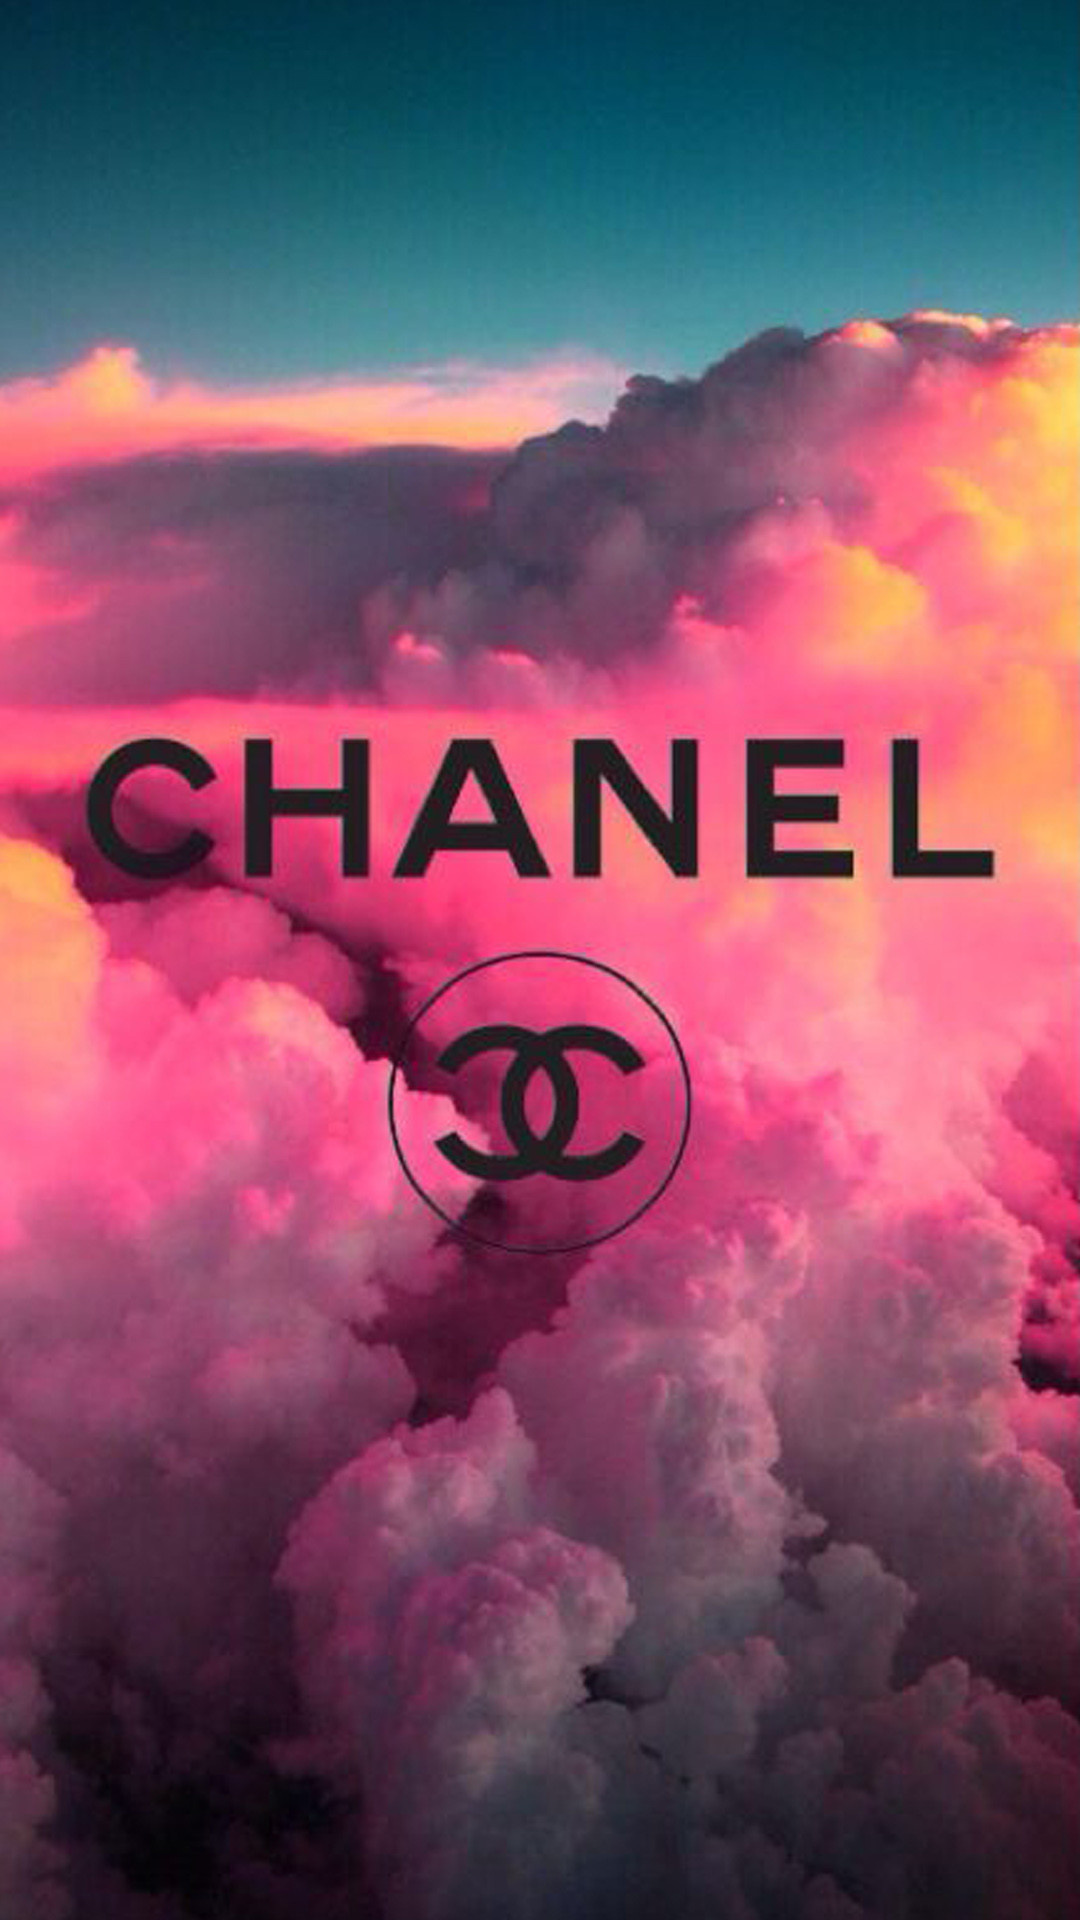 Res: 1080x1920, Chanel iPhone Photos HD.